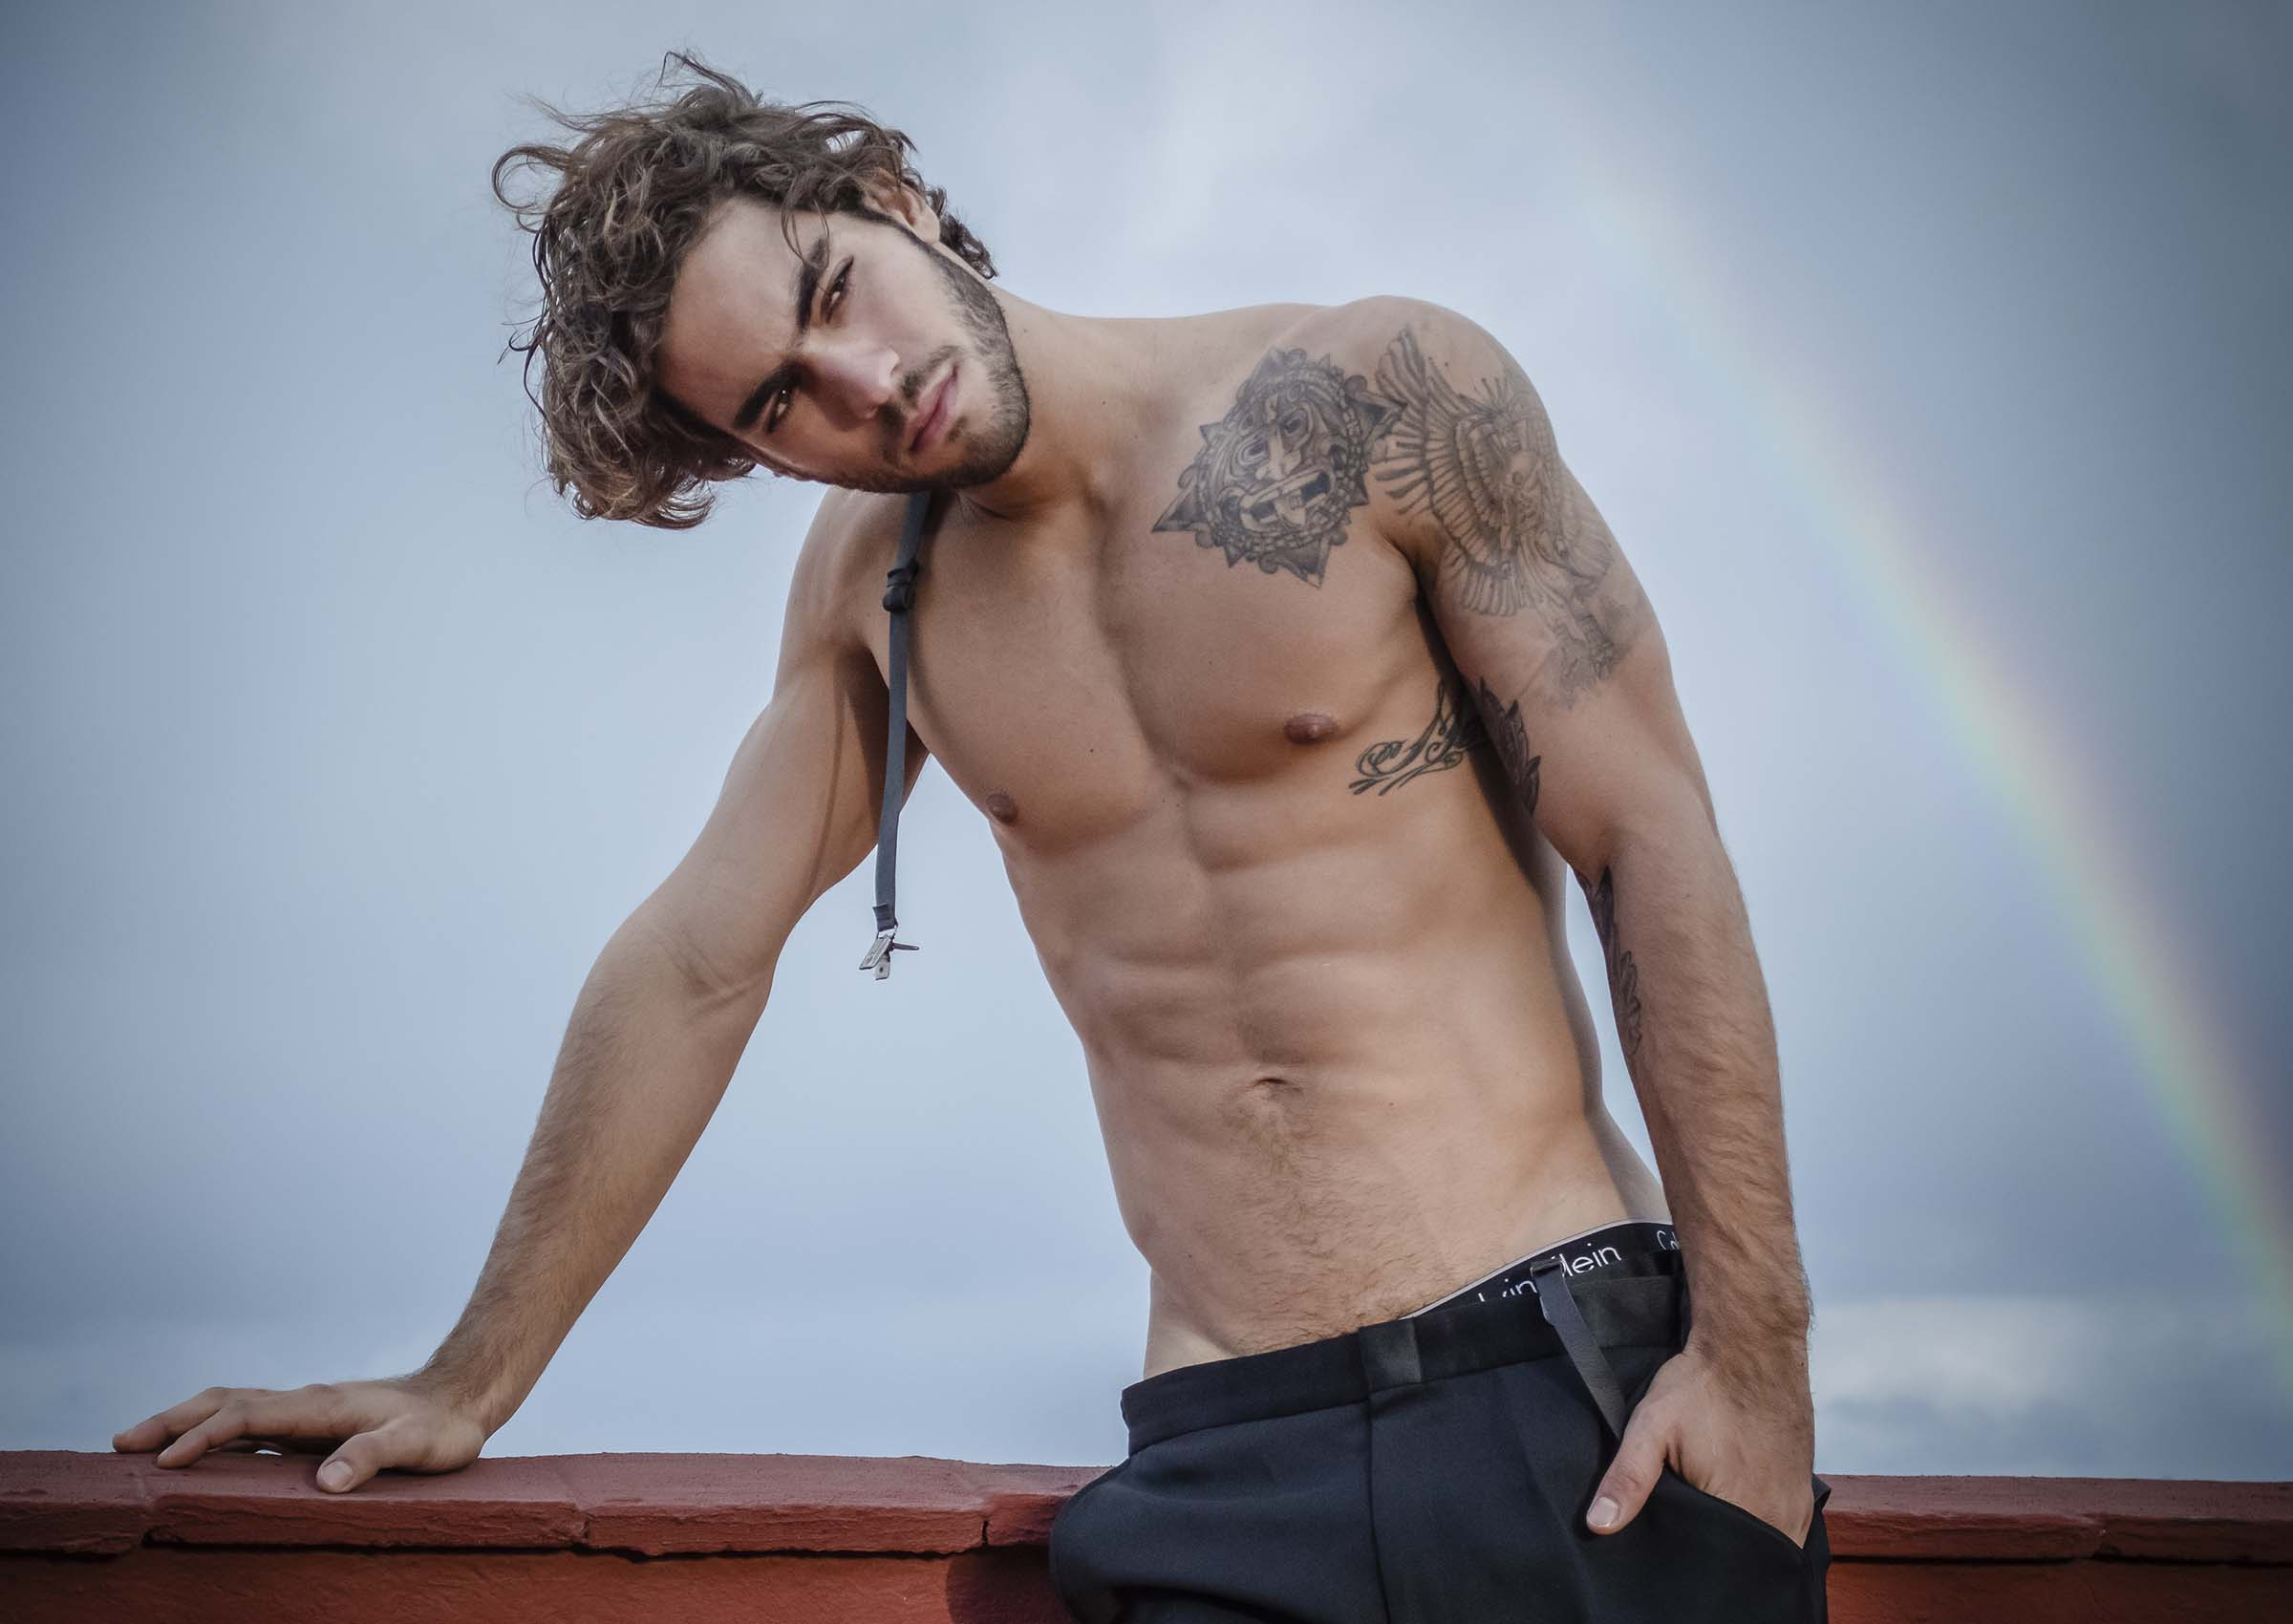 Pedro Arnon by Boc Boc Photo for Brazilian Male Model